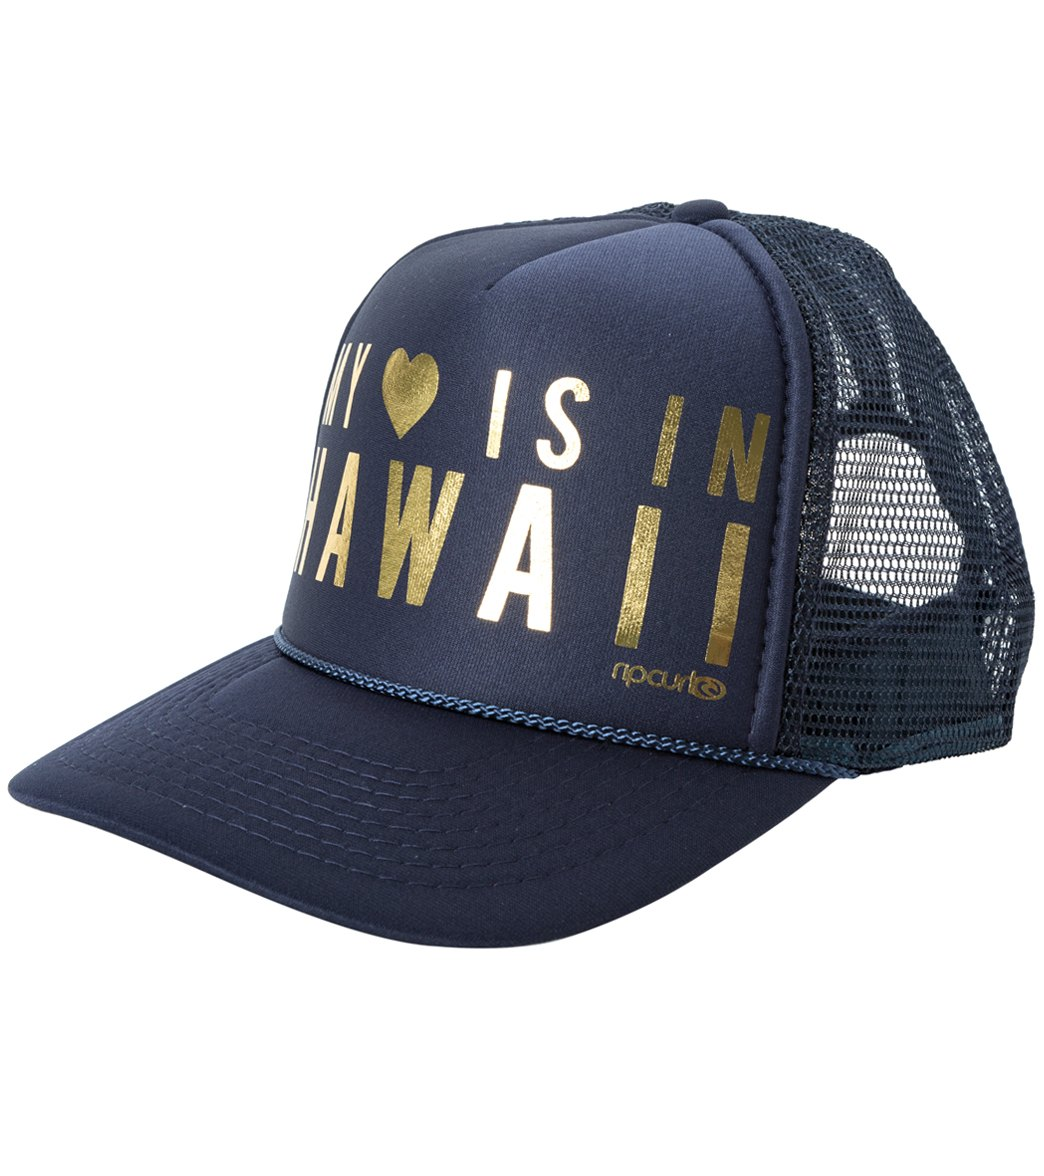 Rip Curl Hawaiian Heart Trucker Hat At Swimoutlet. Hawaiian Force Kalo  Front Snapback 7a6af3639b1e